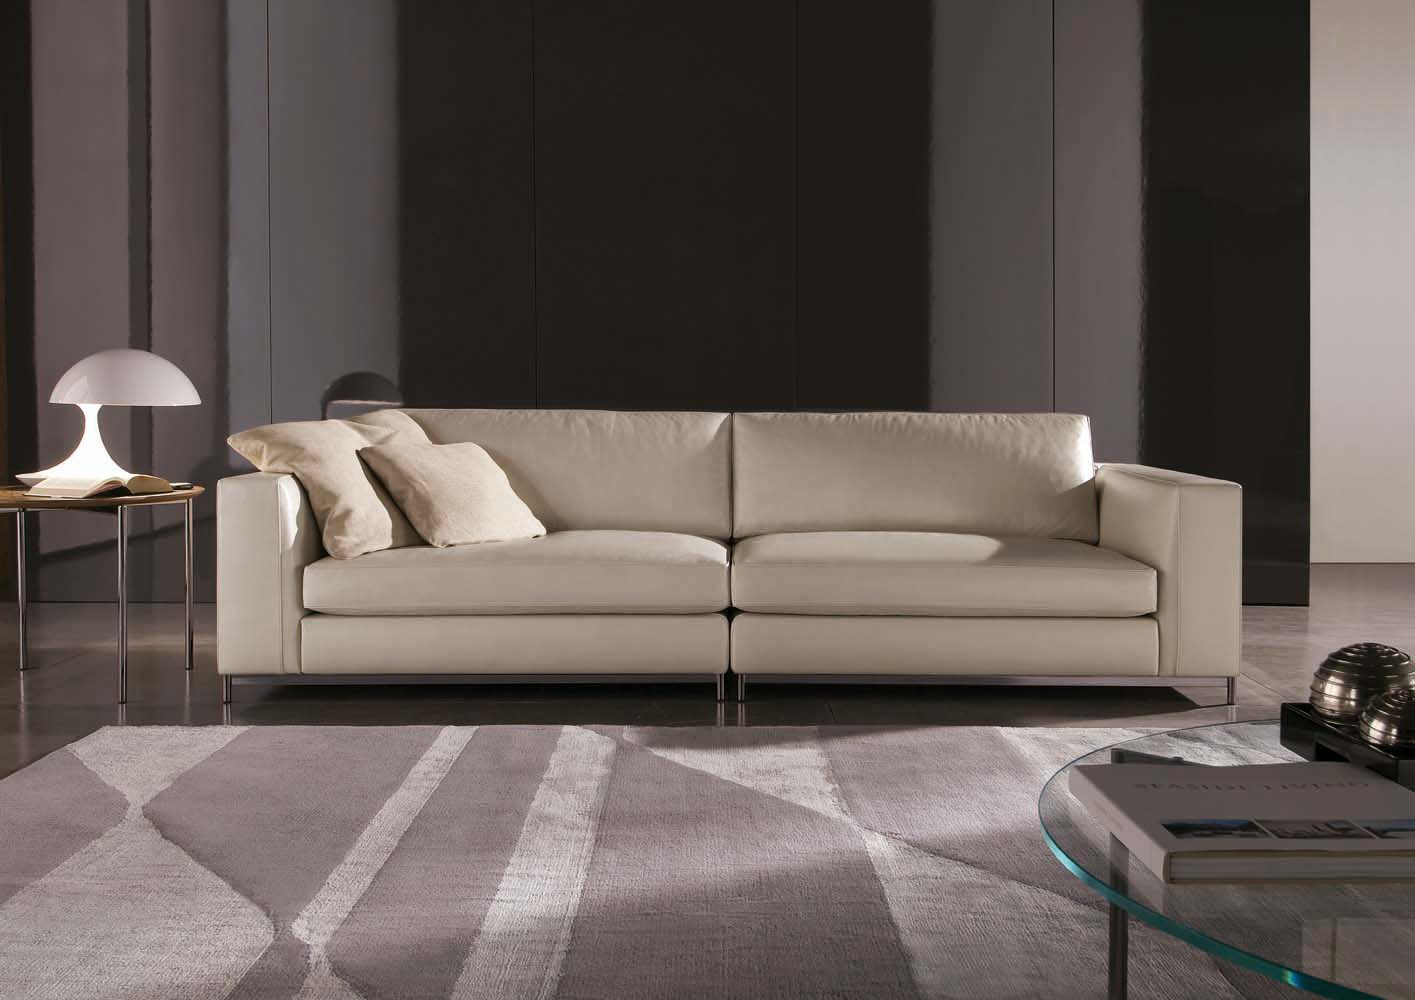 Full Size of Minotti Sofa Alexander Size Freeman Cost Preise Seating System Sleeper Andersen Bed Cad Block Used For Sale Hamilton Indiana Dimensions Lawrence Range Outlet Sofa Minotti Sofa